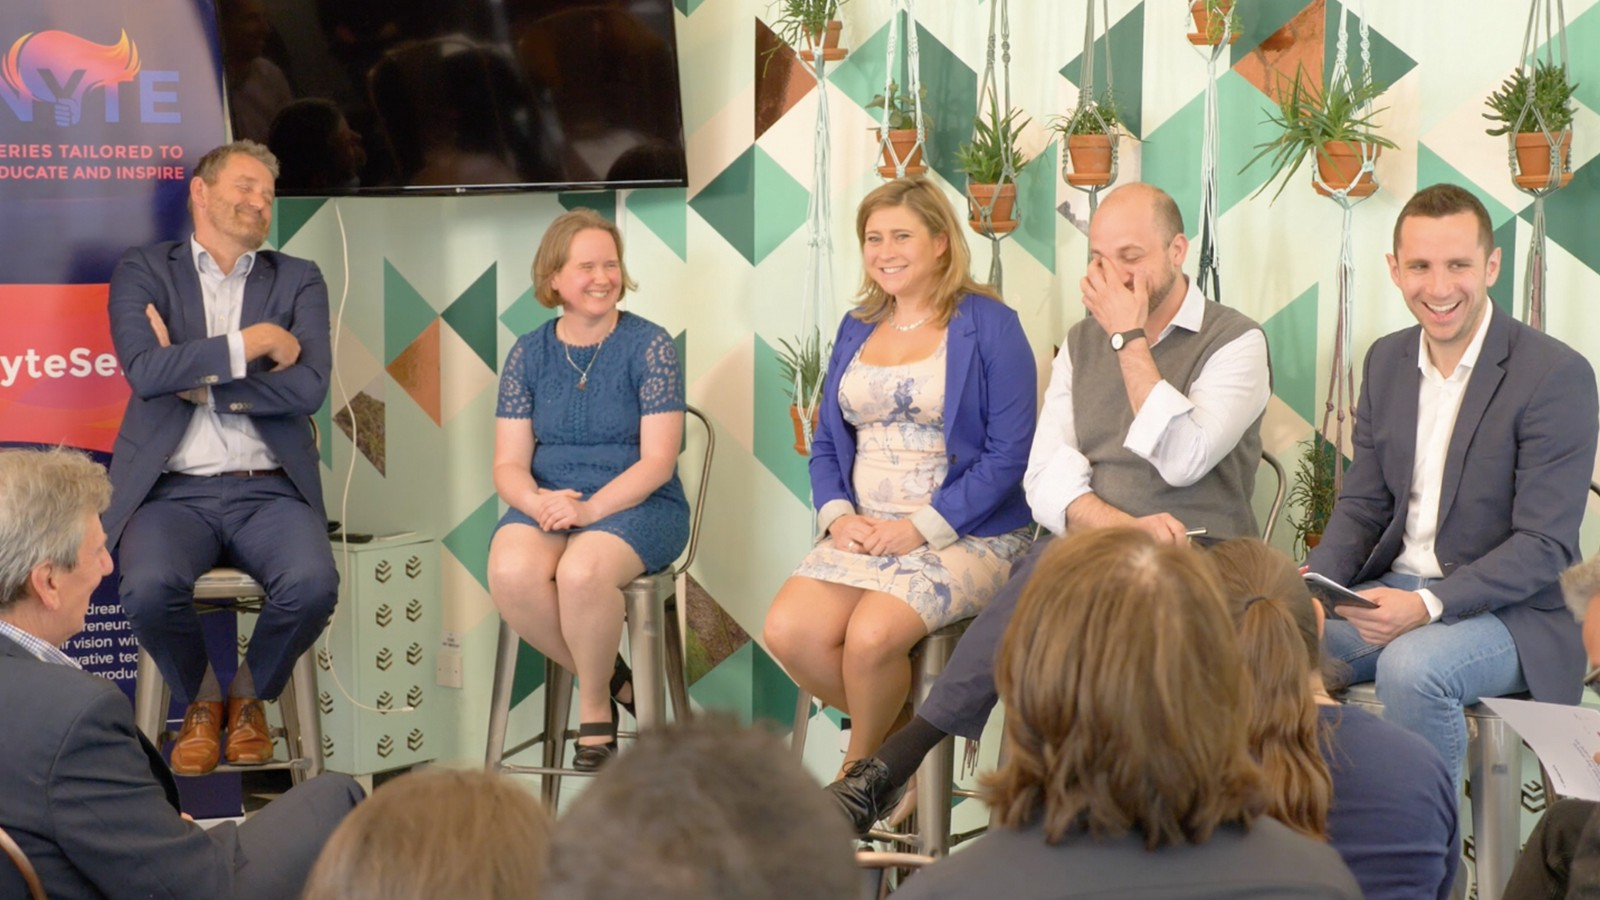 Our digital healthcare panel